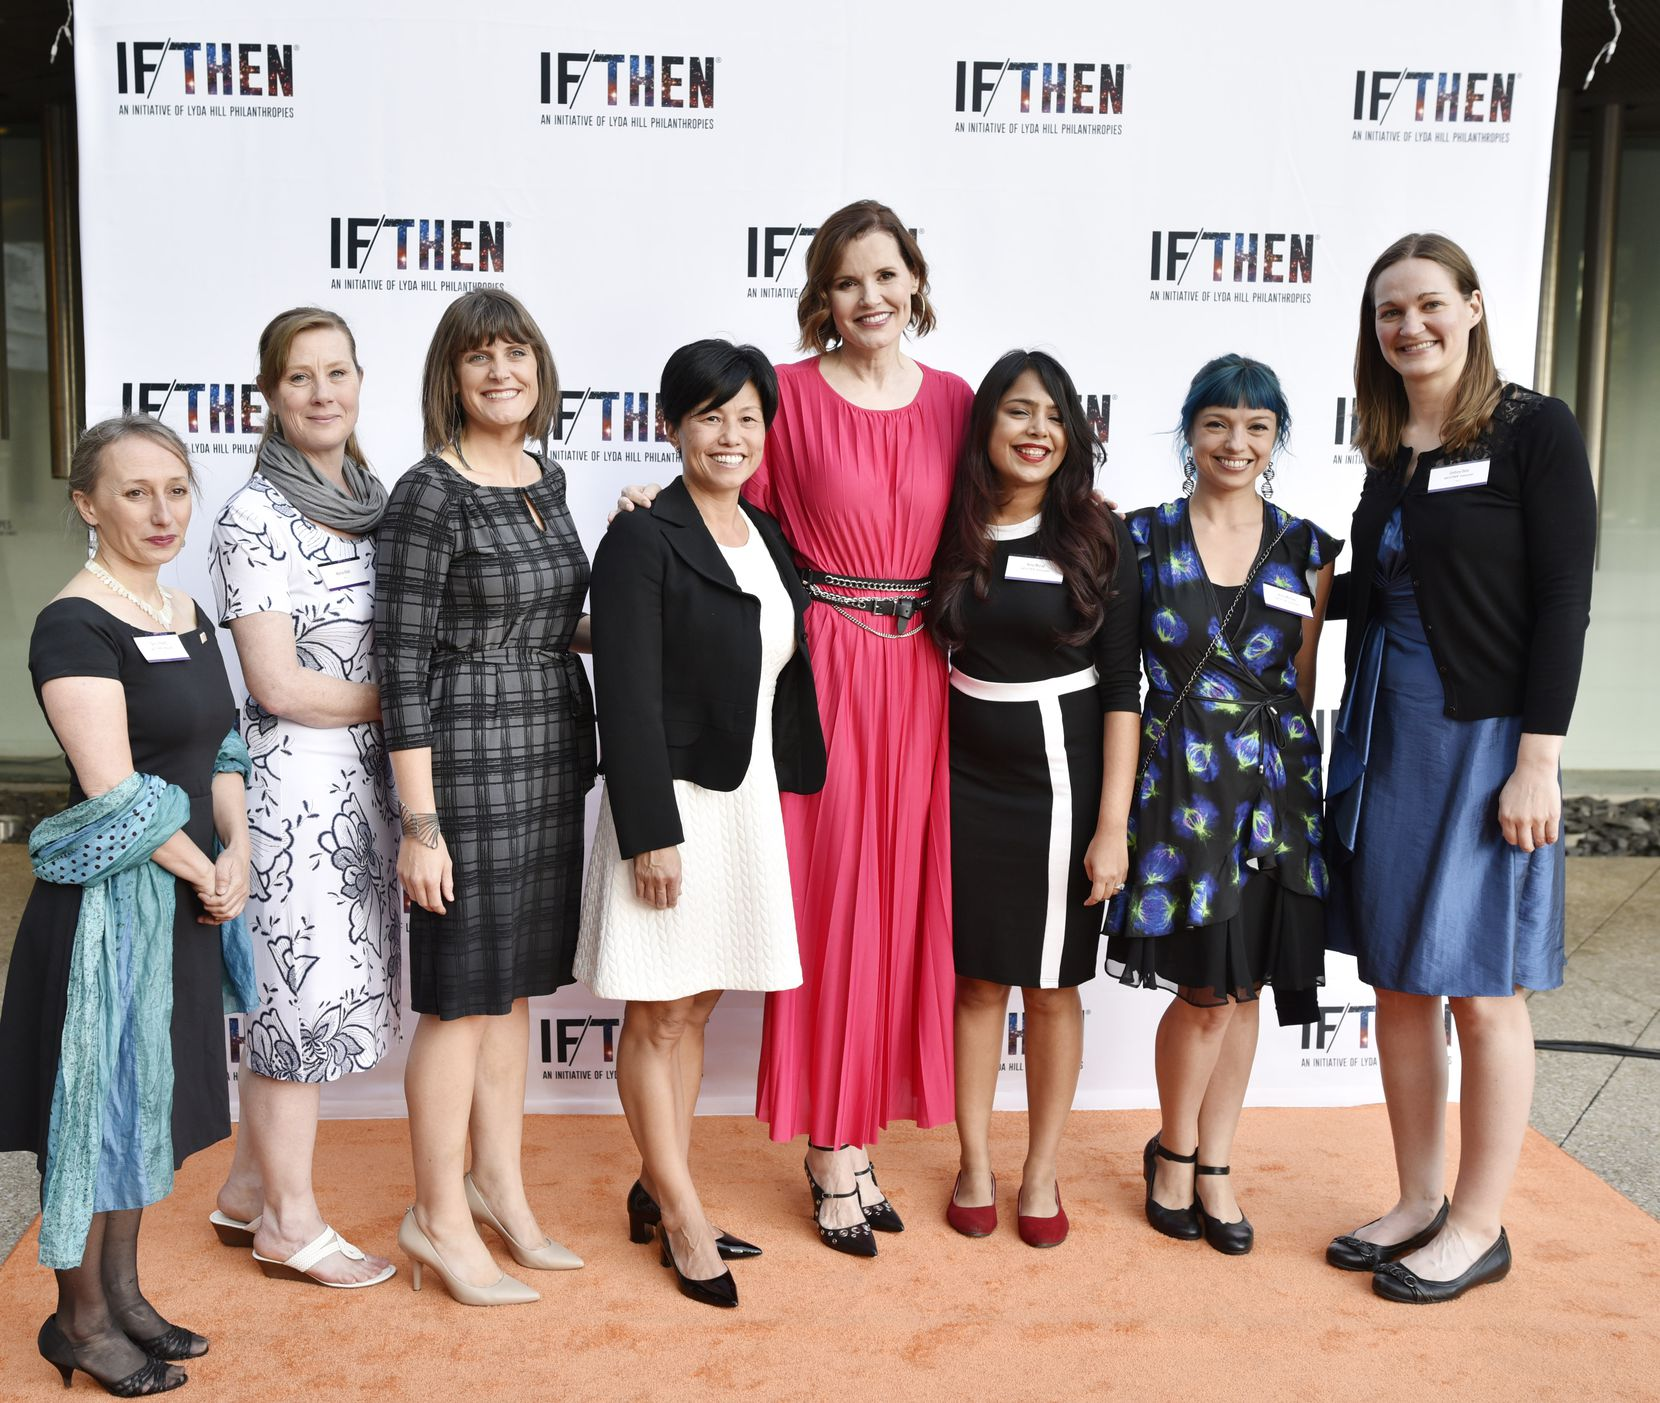 "Geena Davis, fourth from right, actor and founder of the Geena Davis Institute on Gender in Media, poses for a photo with IF/THEN Ambassadors and scientists during a red carpet event for the IF/THEN Ambassador Summit ""An Evening of Science and Storytelling,"" at the Perot Museum."